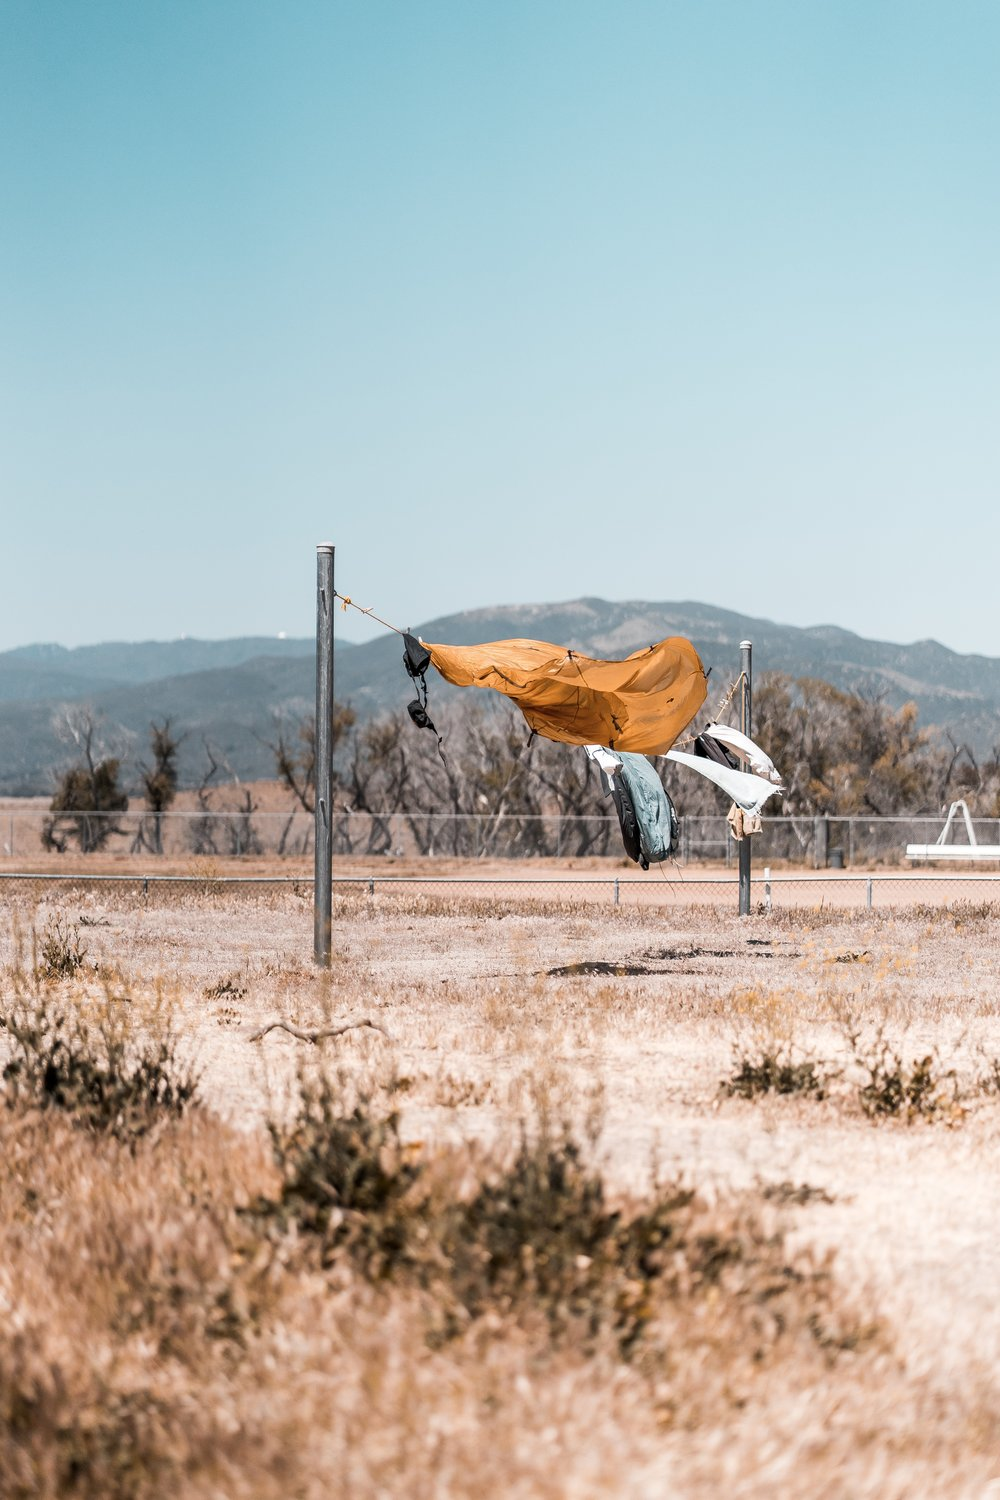 People Drying Stuff Out in Warner Springs